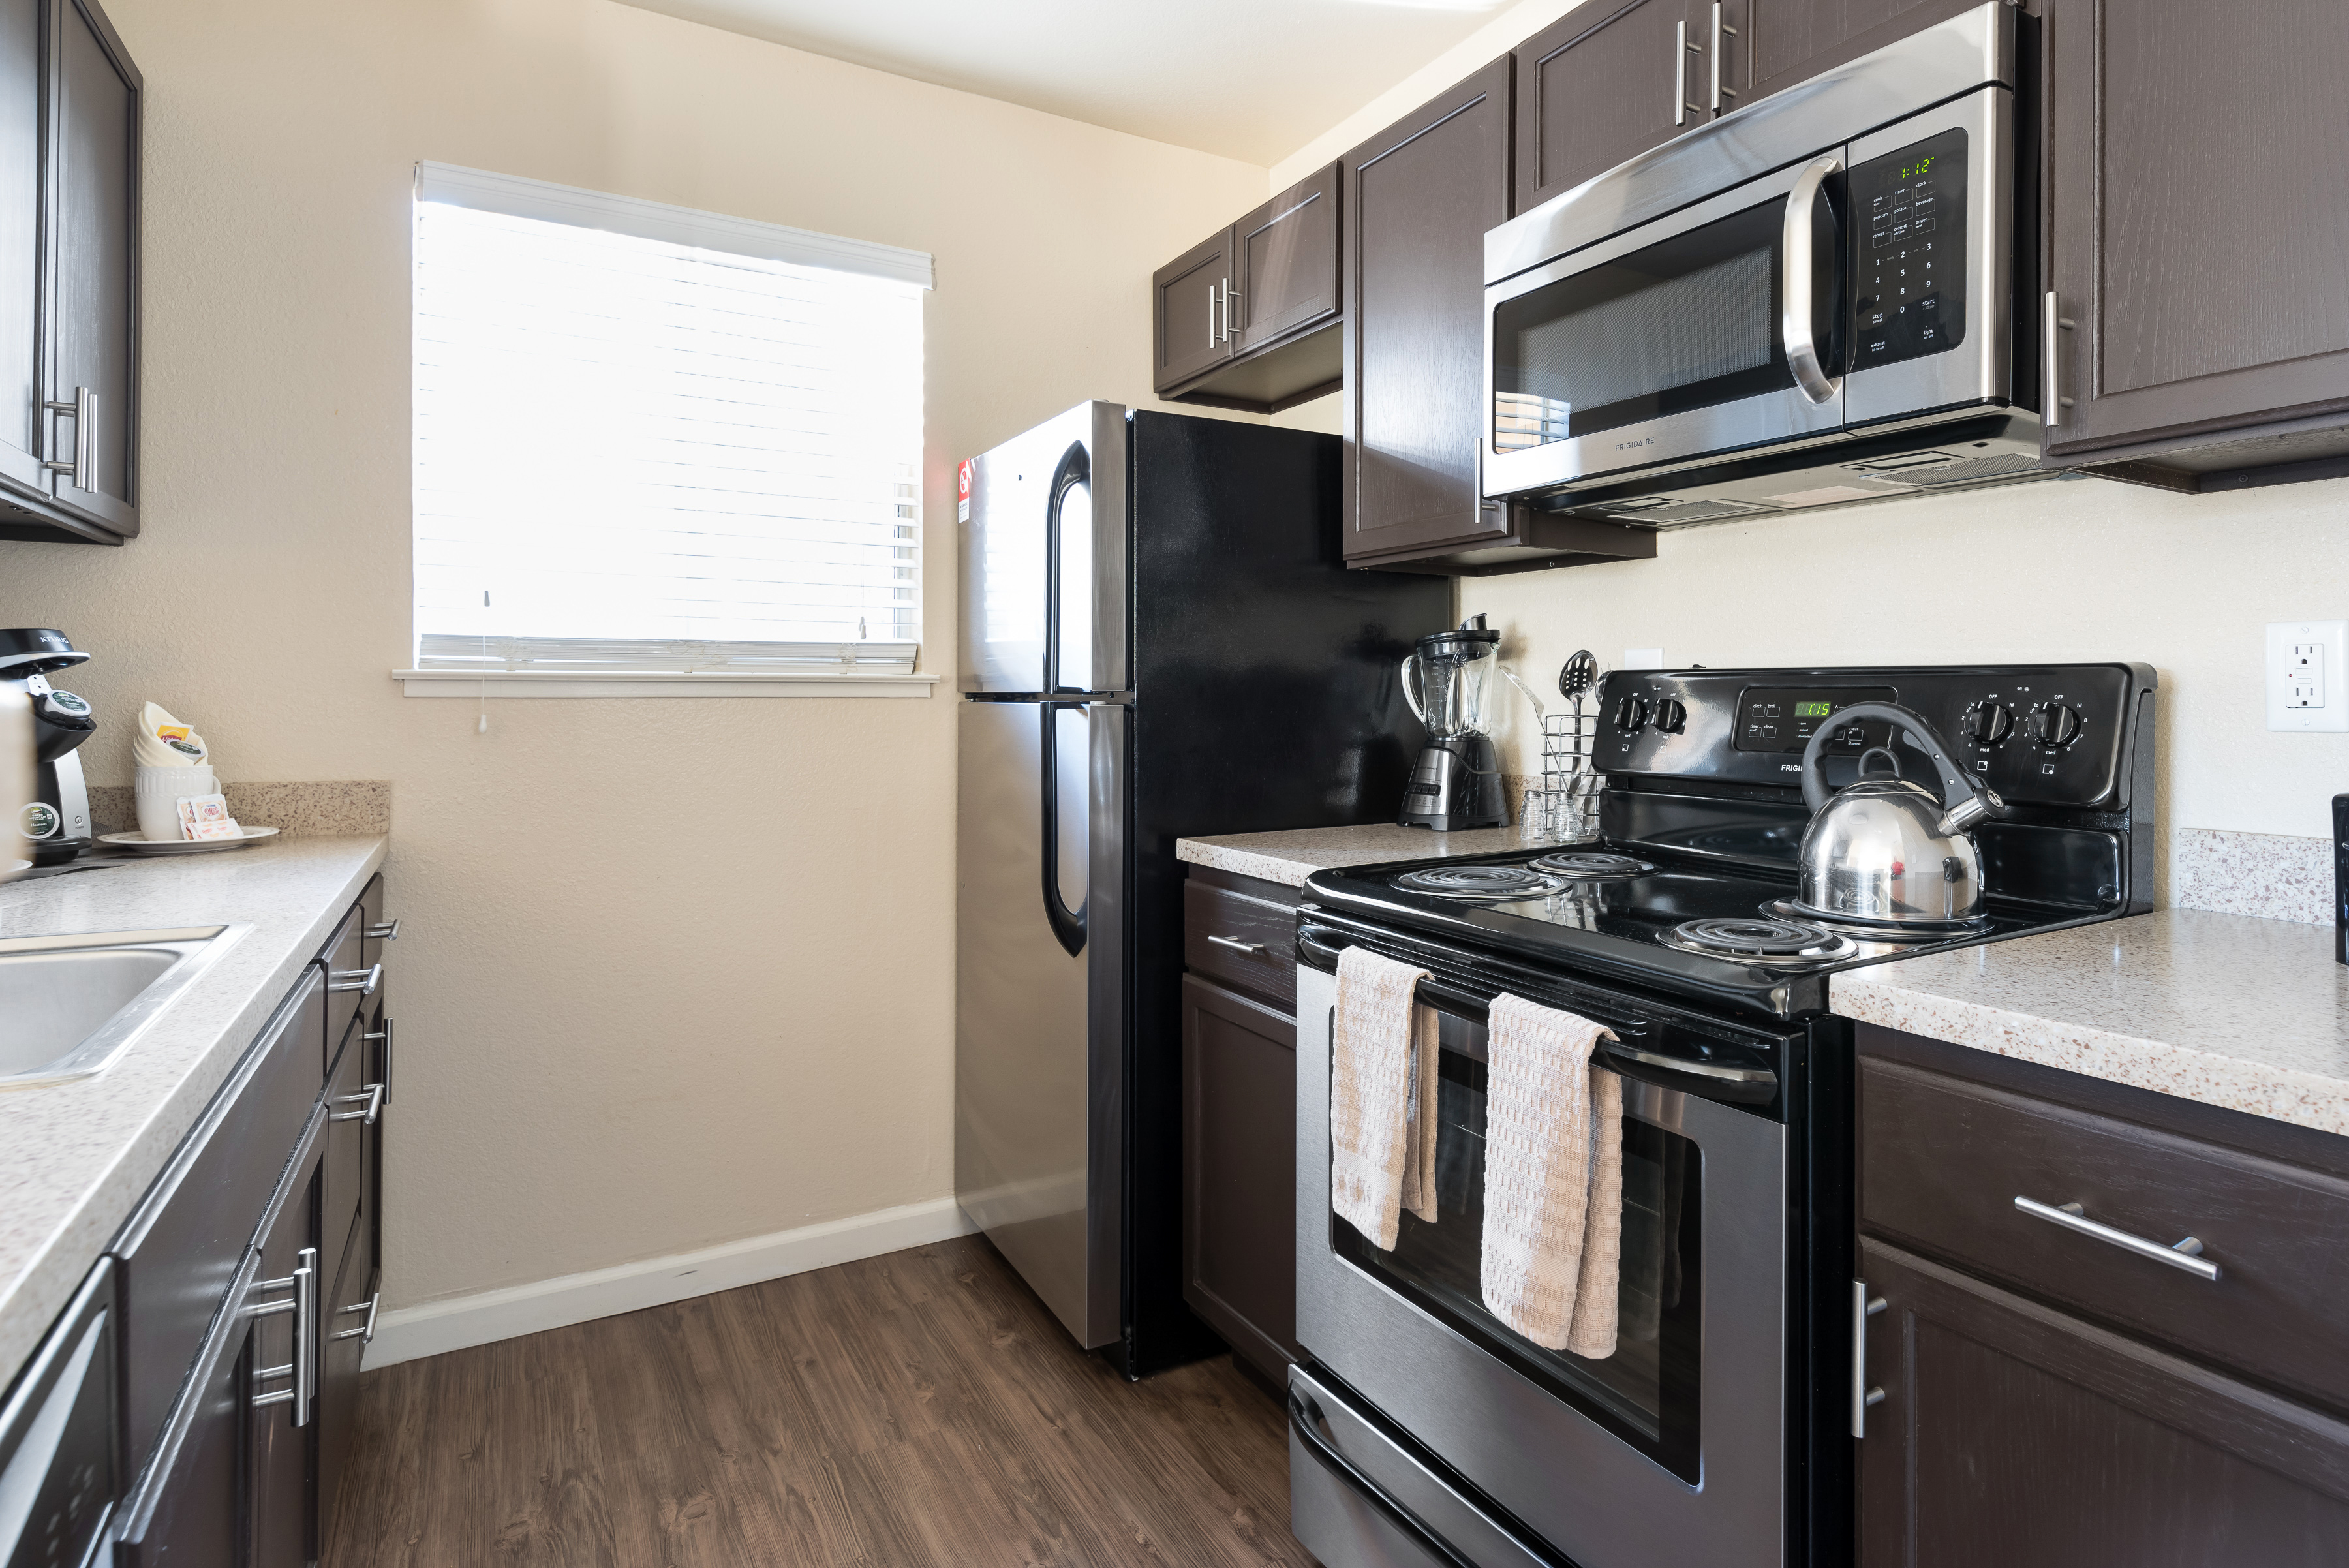 image 5 furnished 1 bedroom Apartment for rent in San Ramon, Contra Costa County